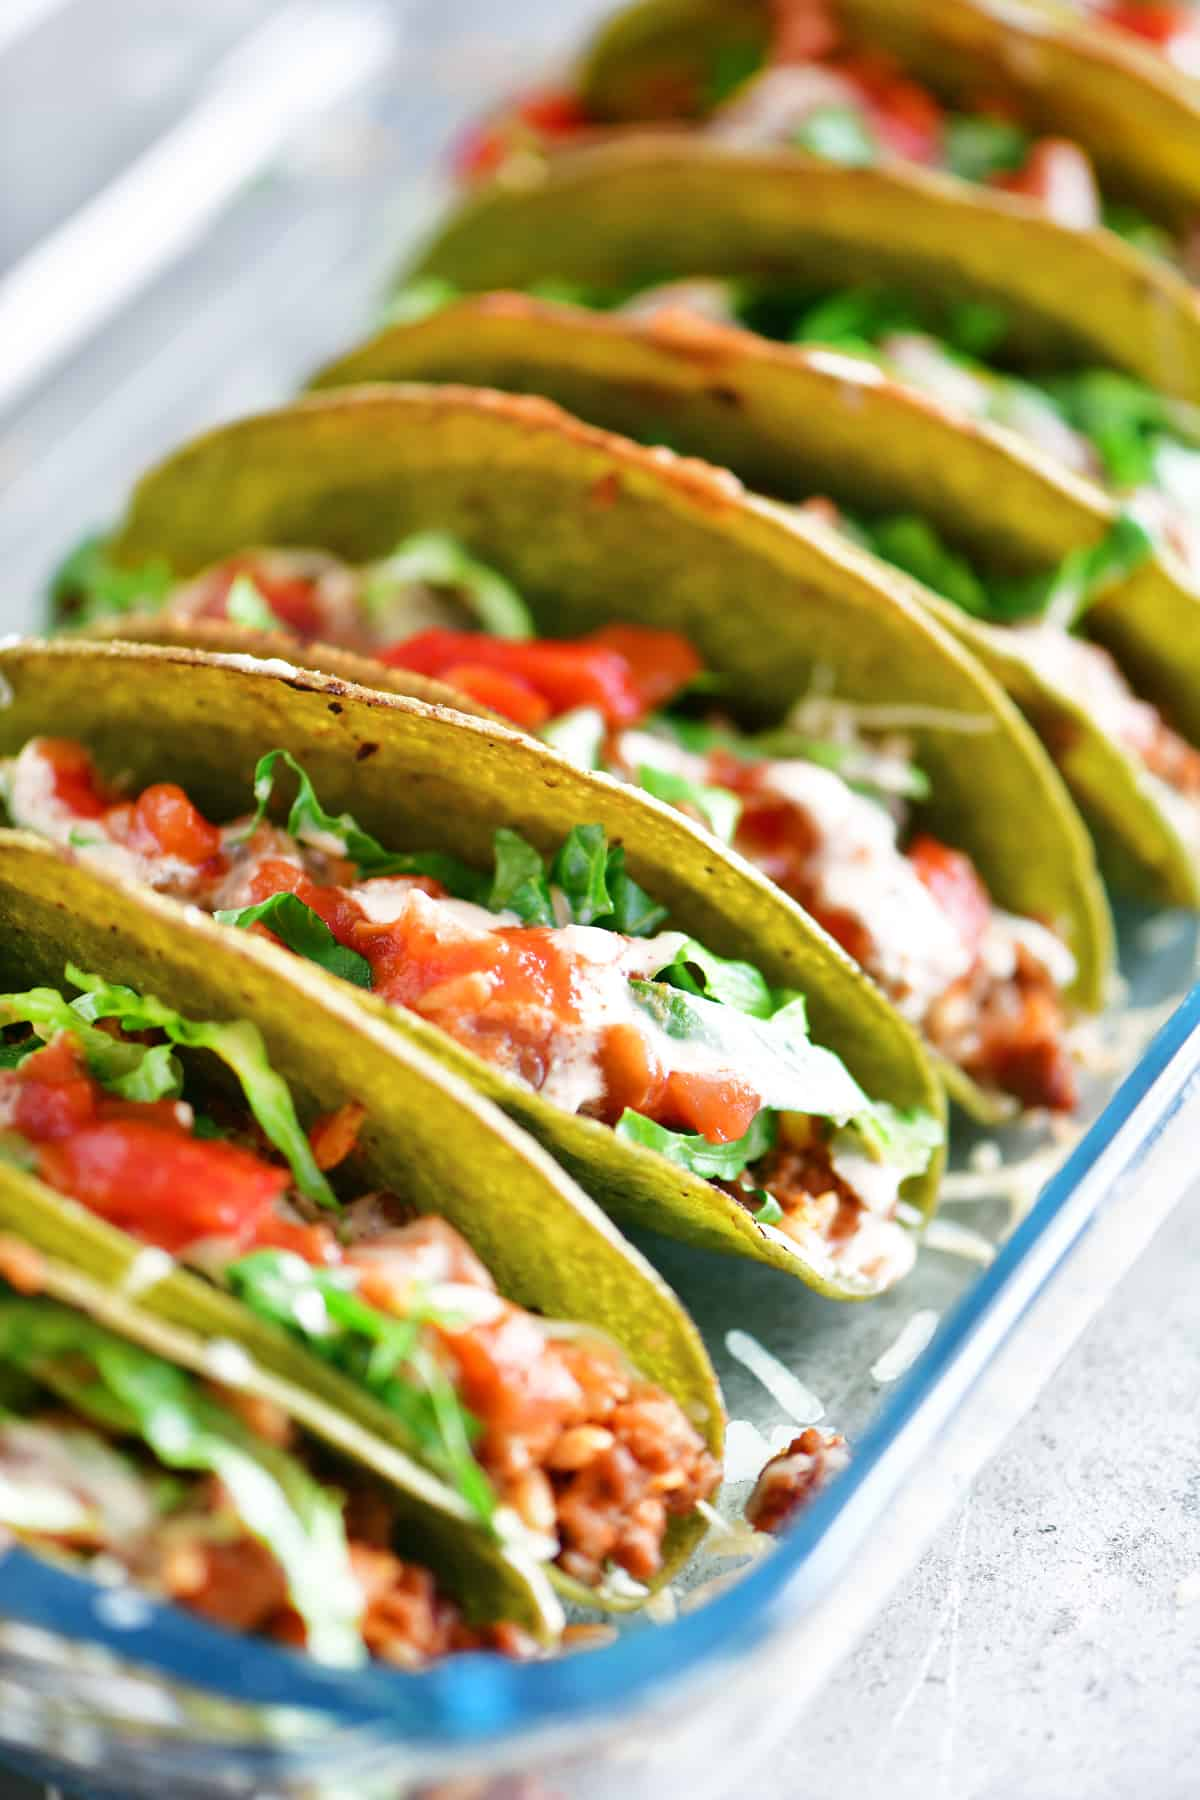 oven baked taco recipe with beef